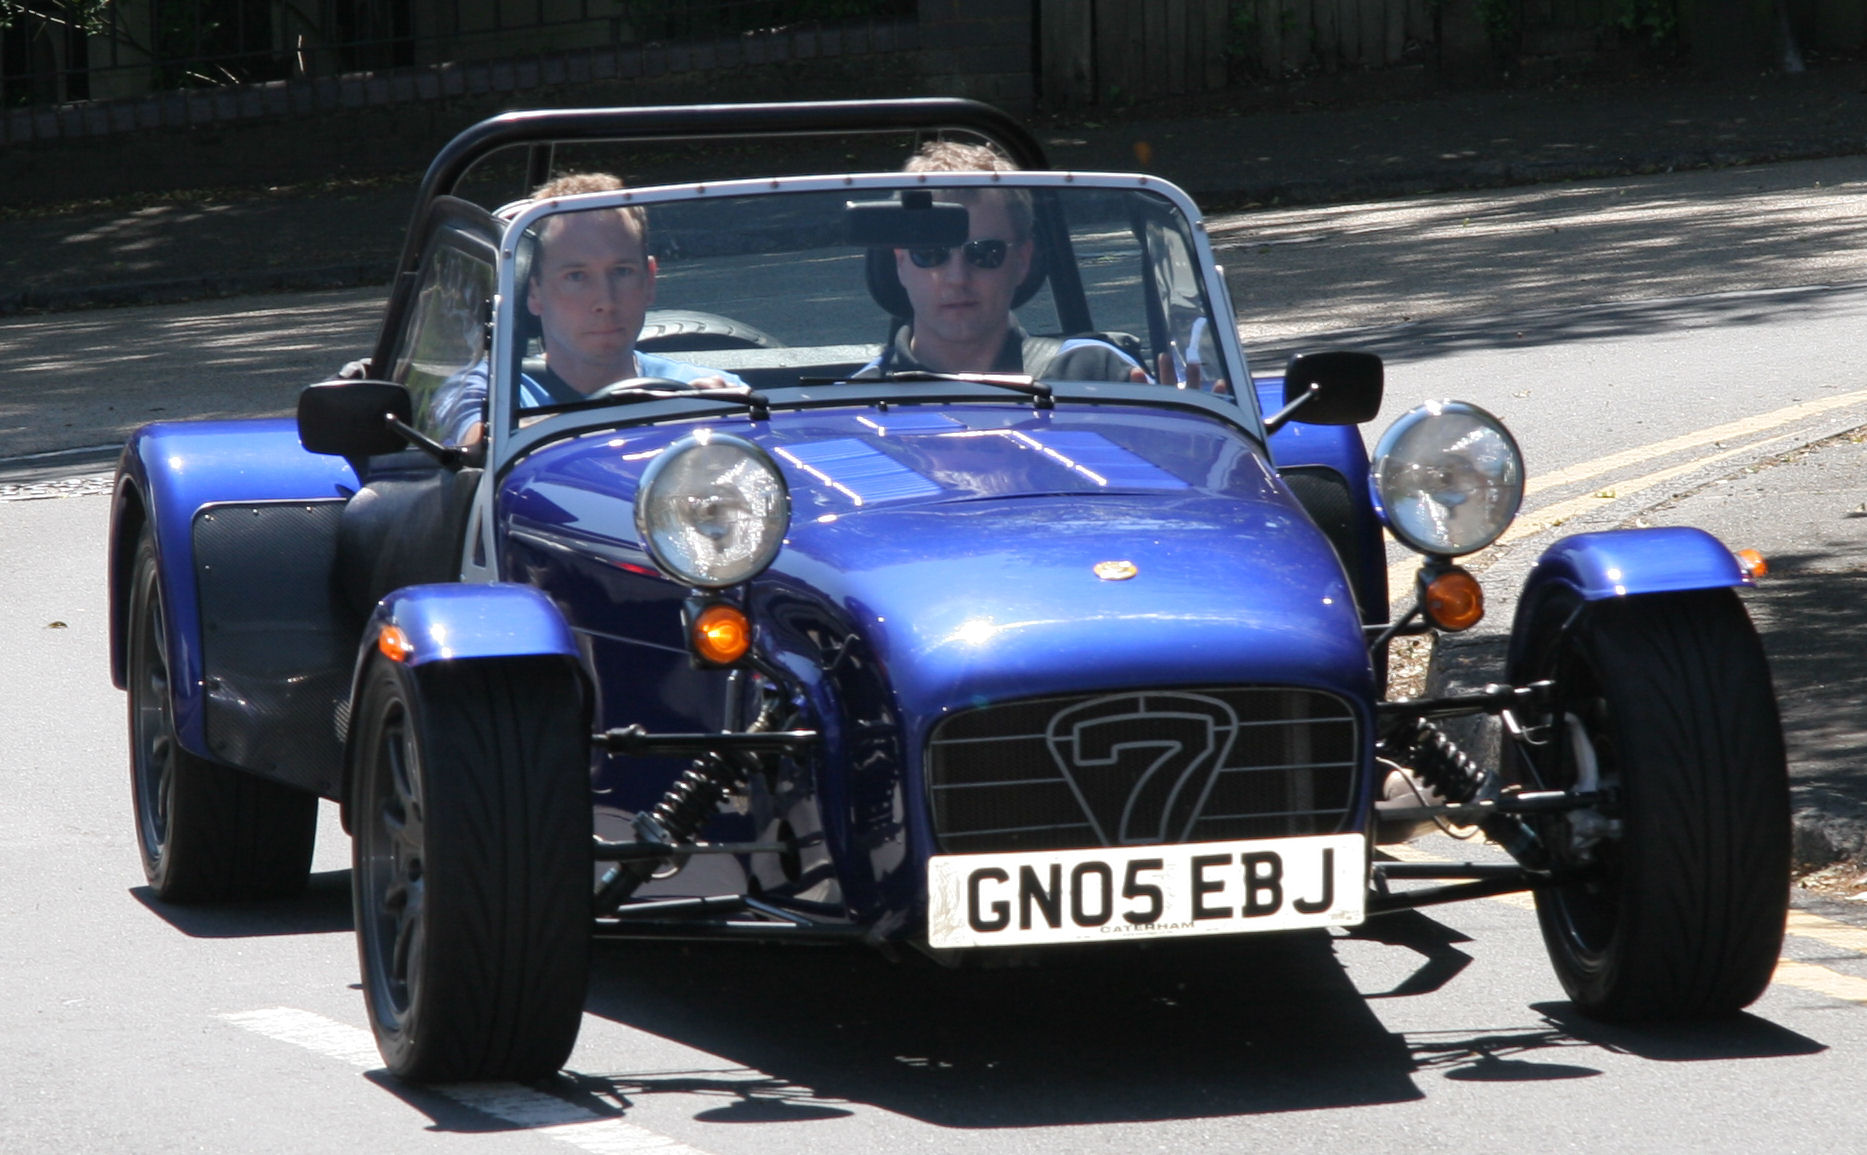 Caterham roadsport photo - 1